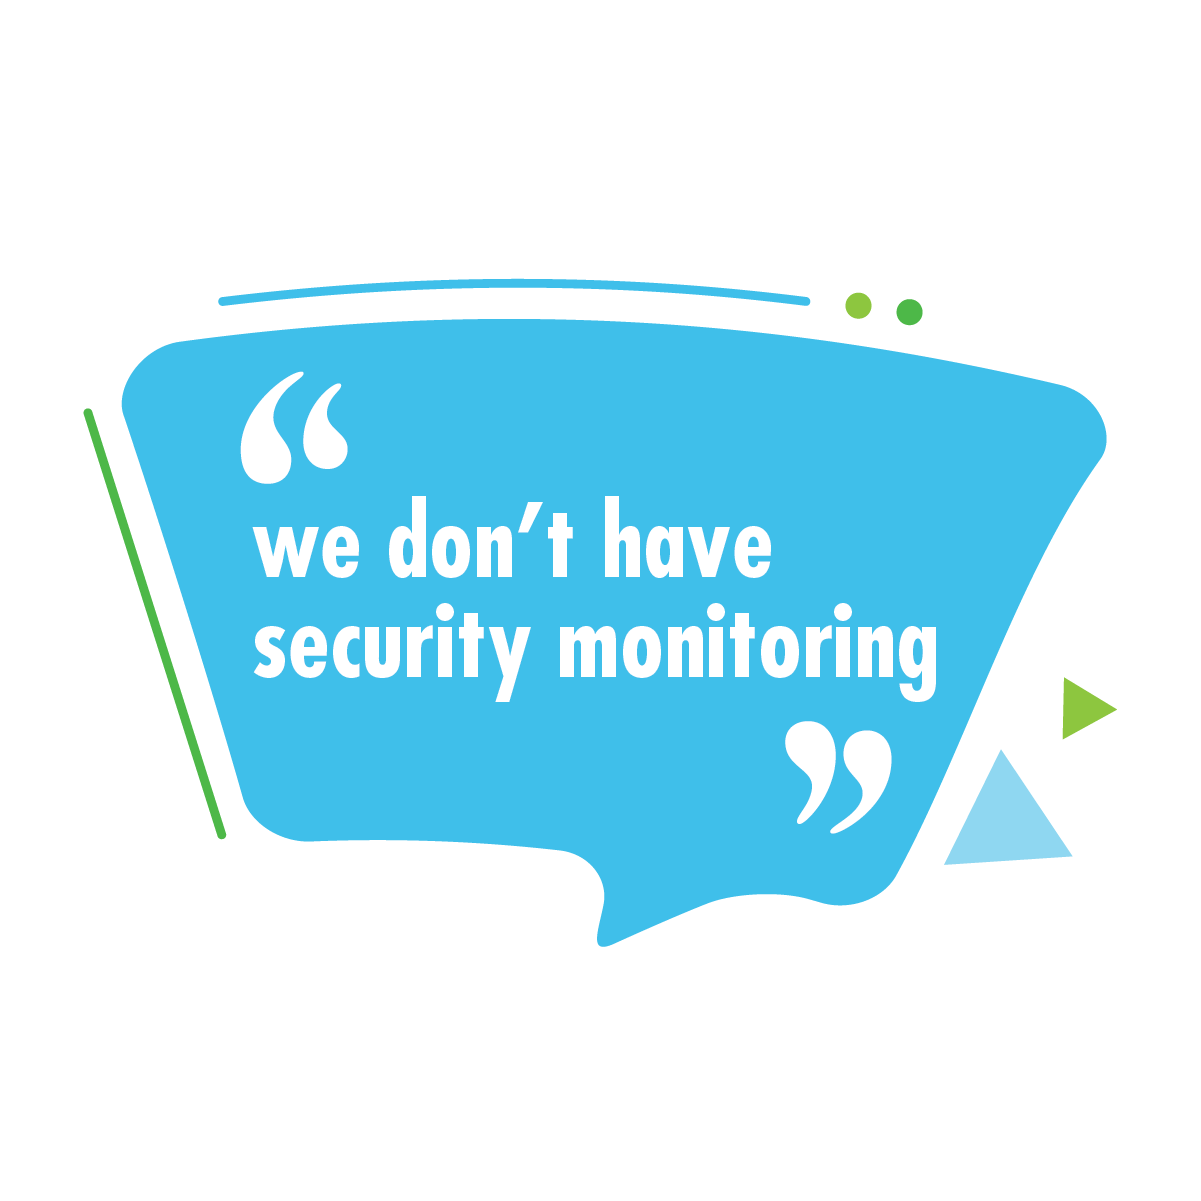 """We don't have security monitoring"""